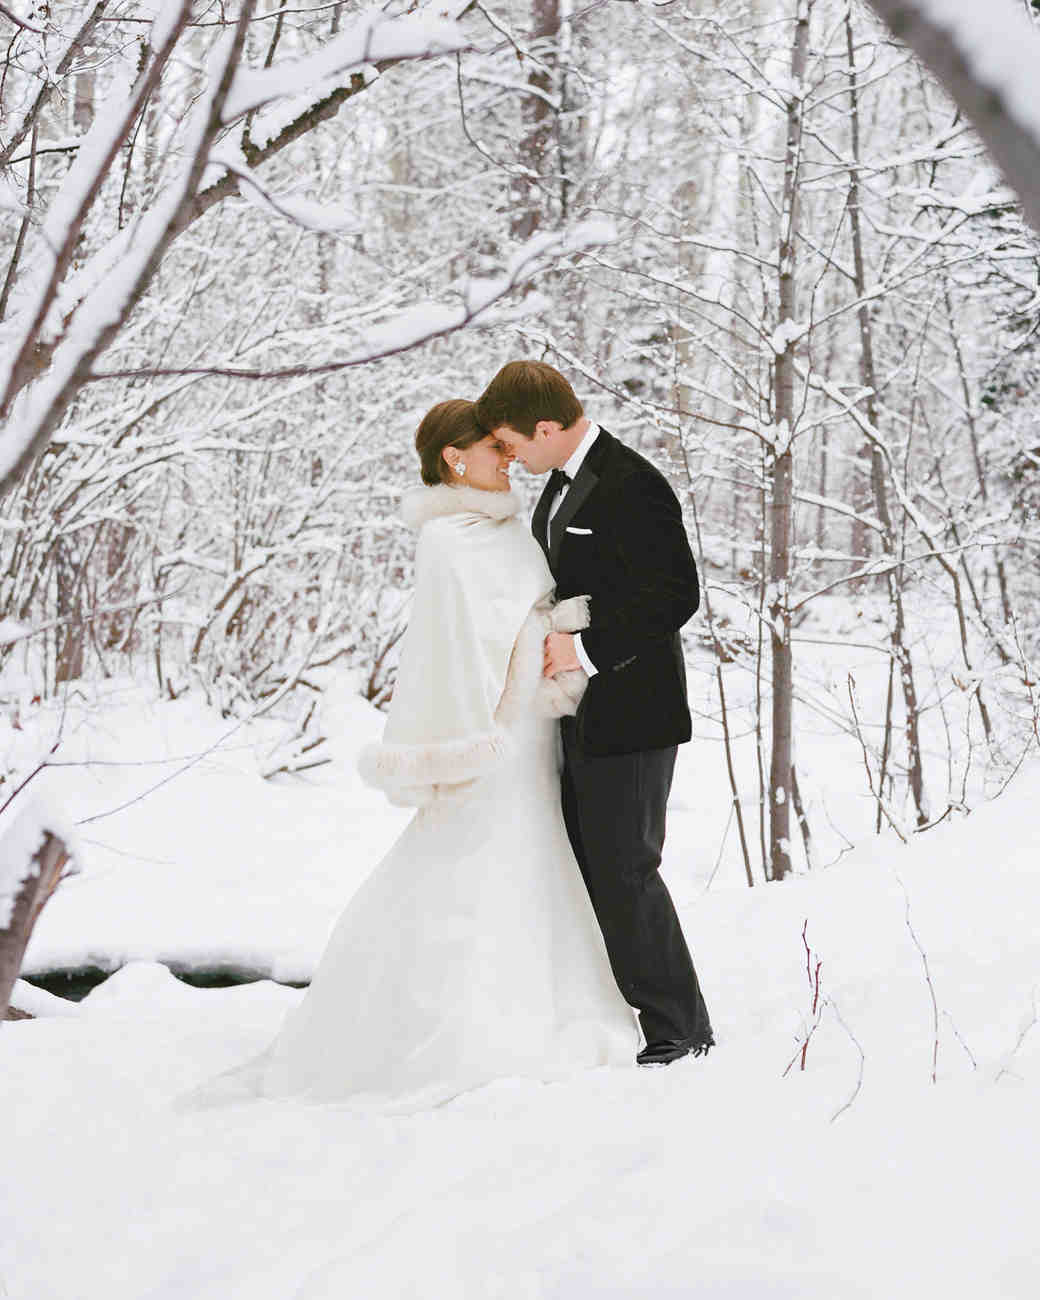 Winter Weddings: 11 Snowy Wedding Photos That Will Make You Want To Get